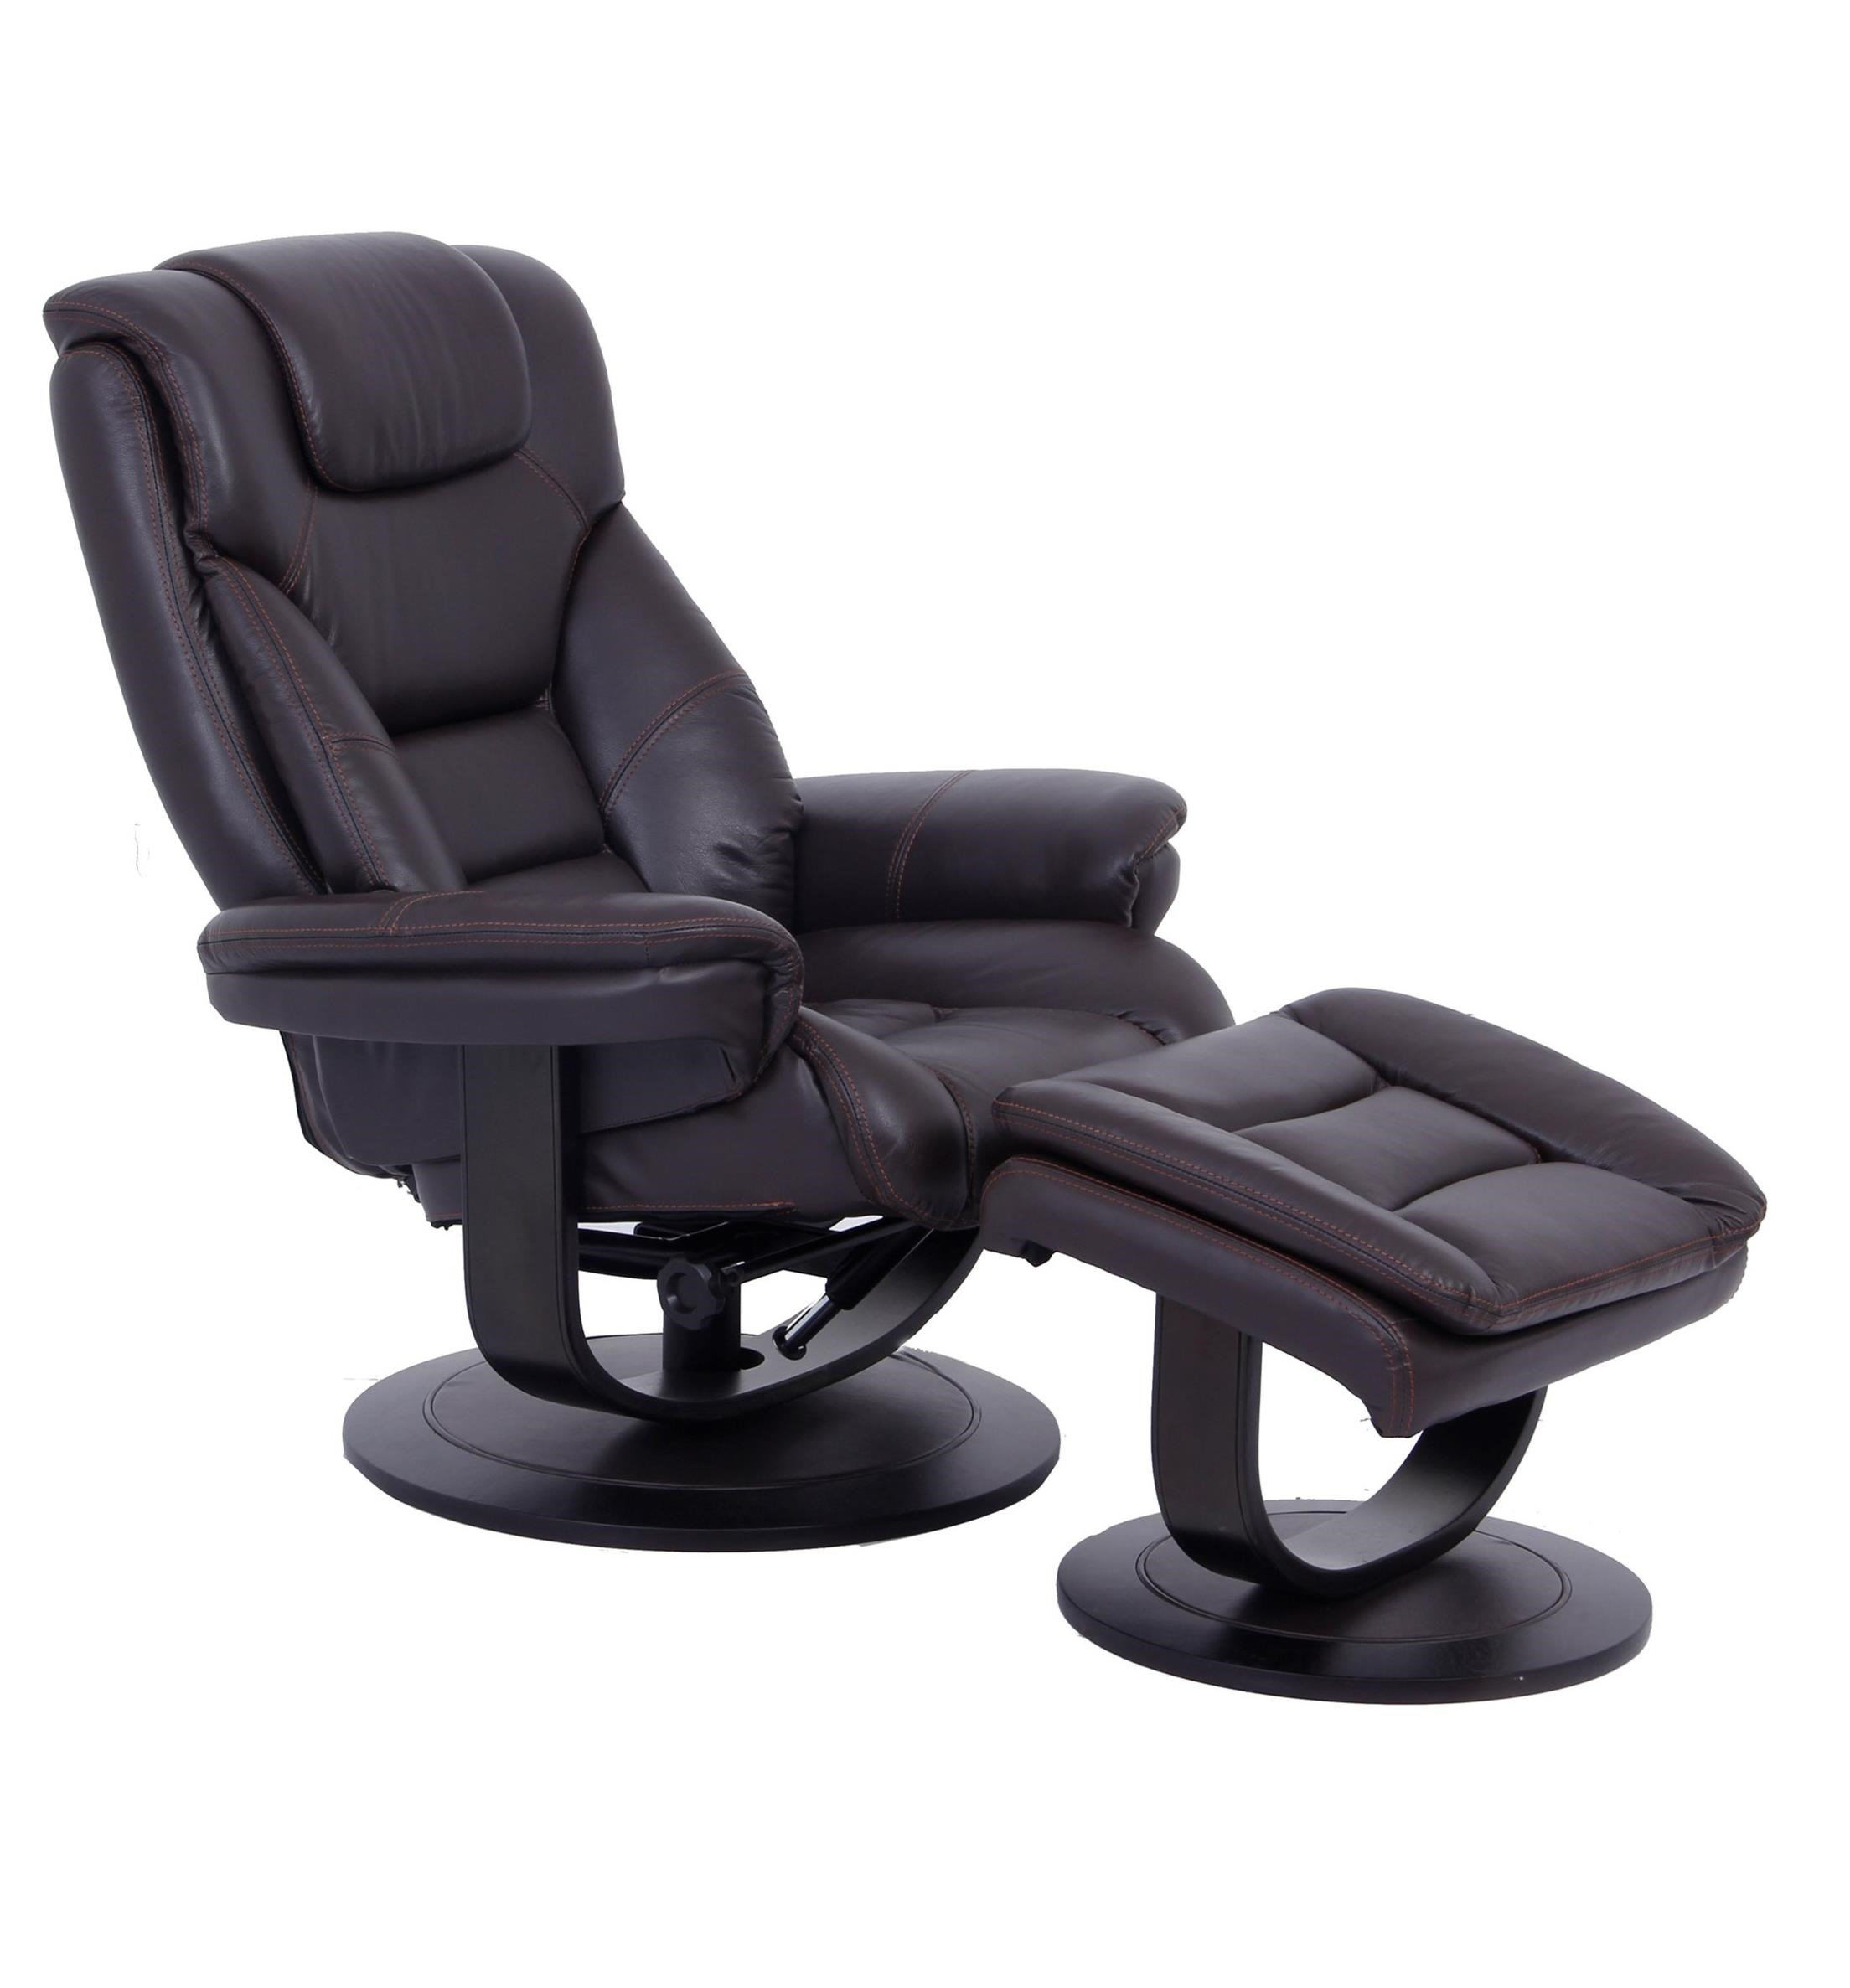 K827 Reclining Chair And Ottoman